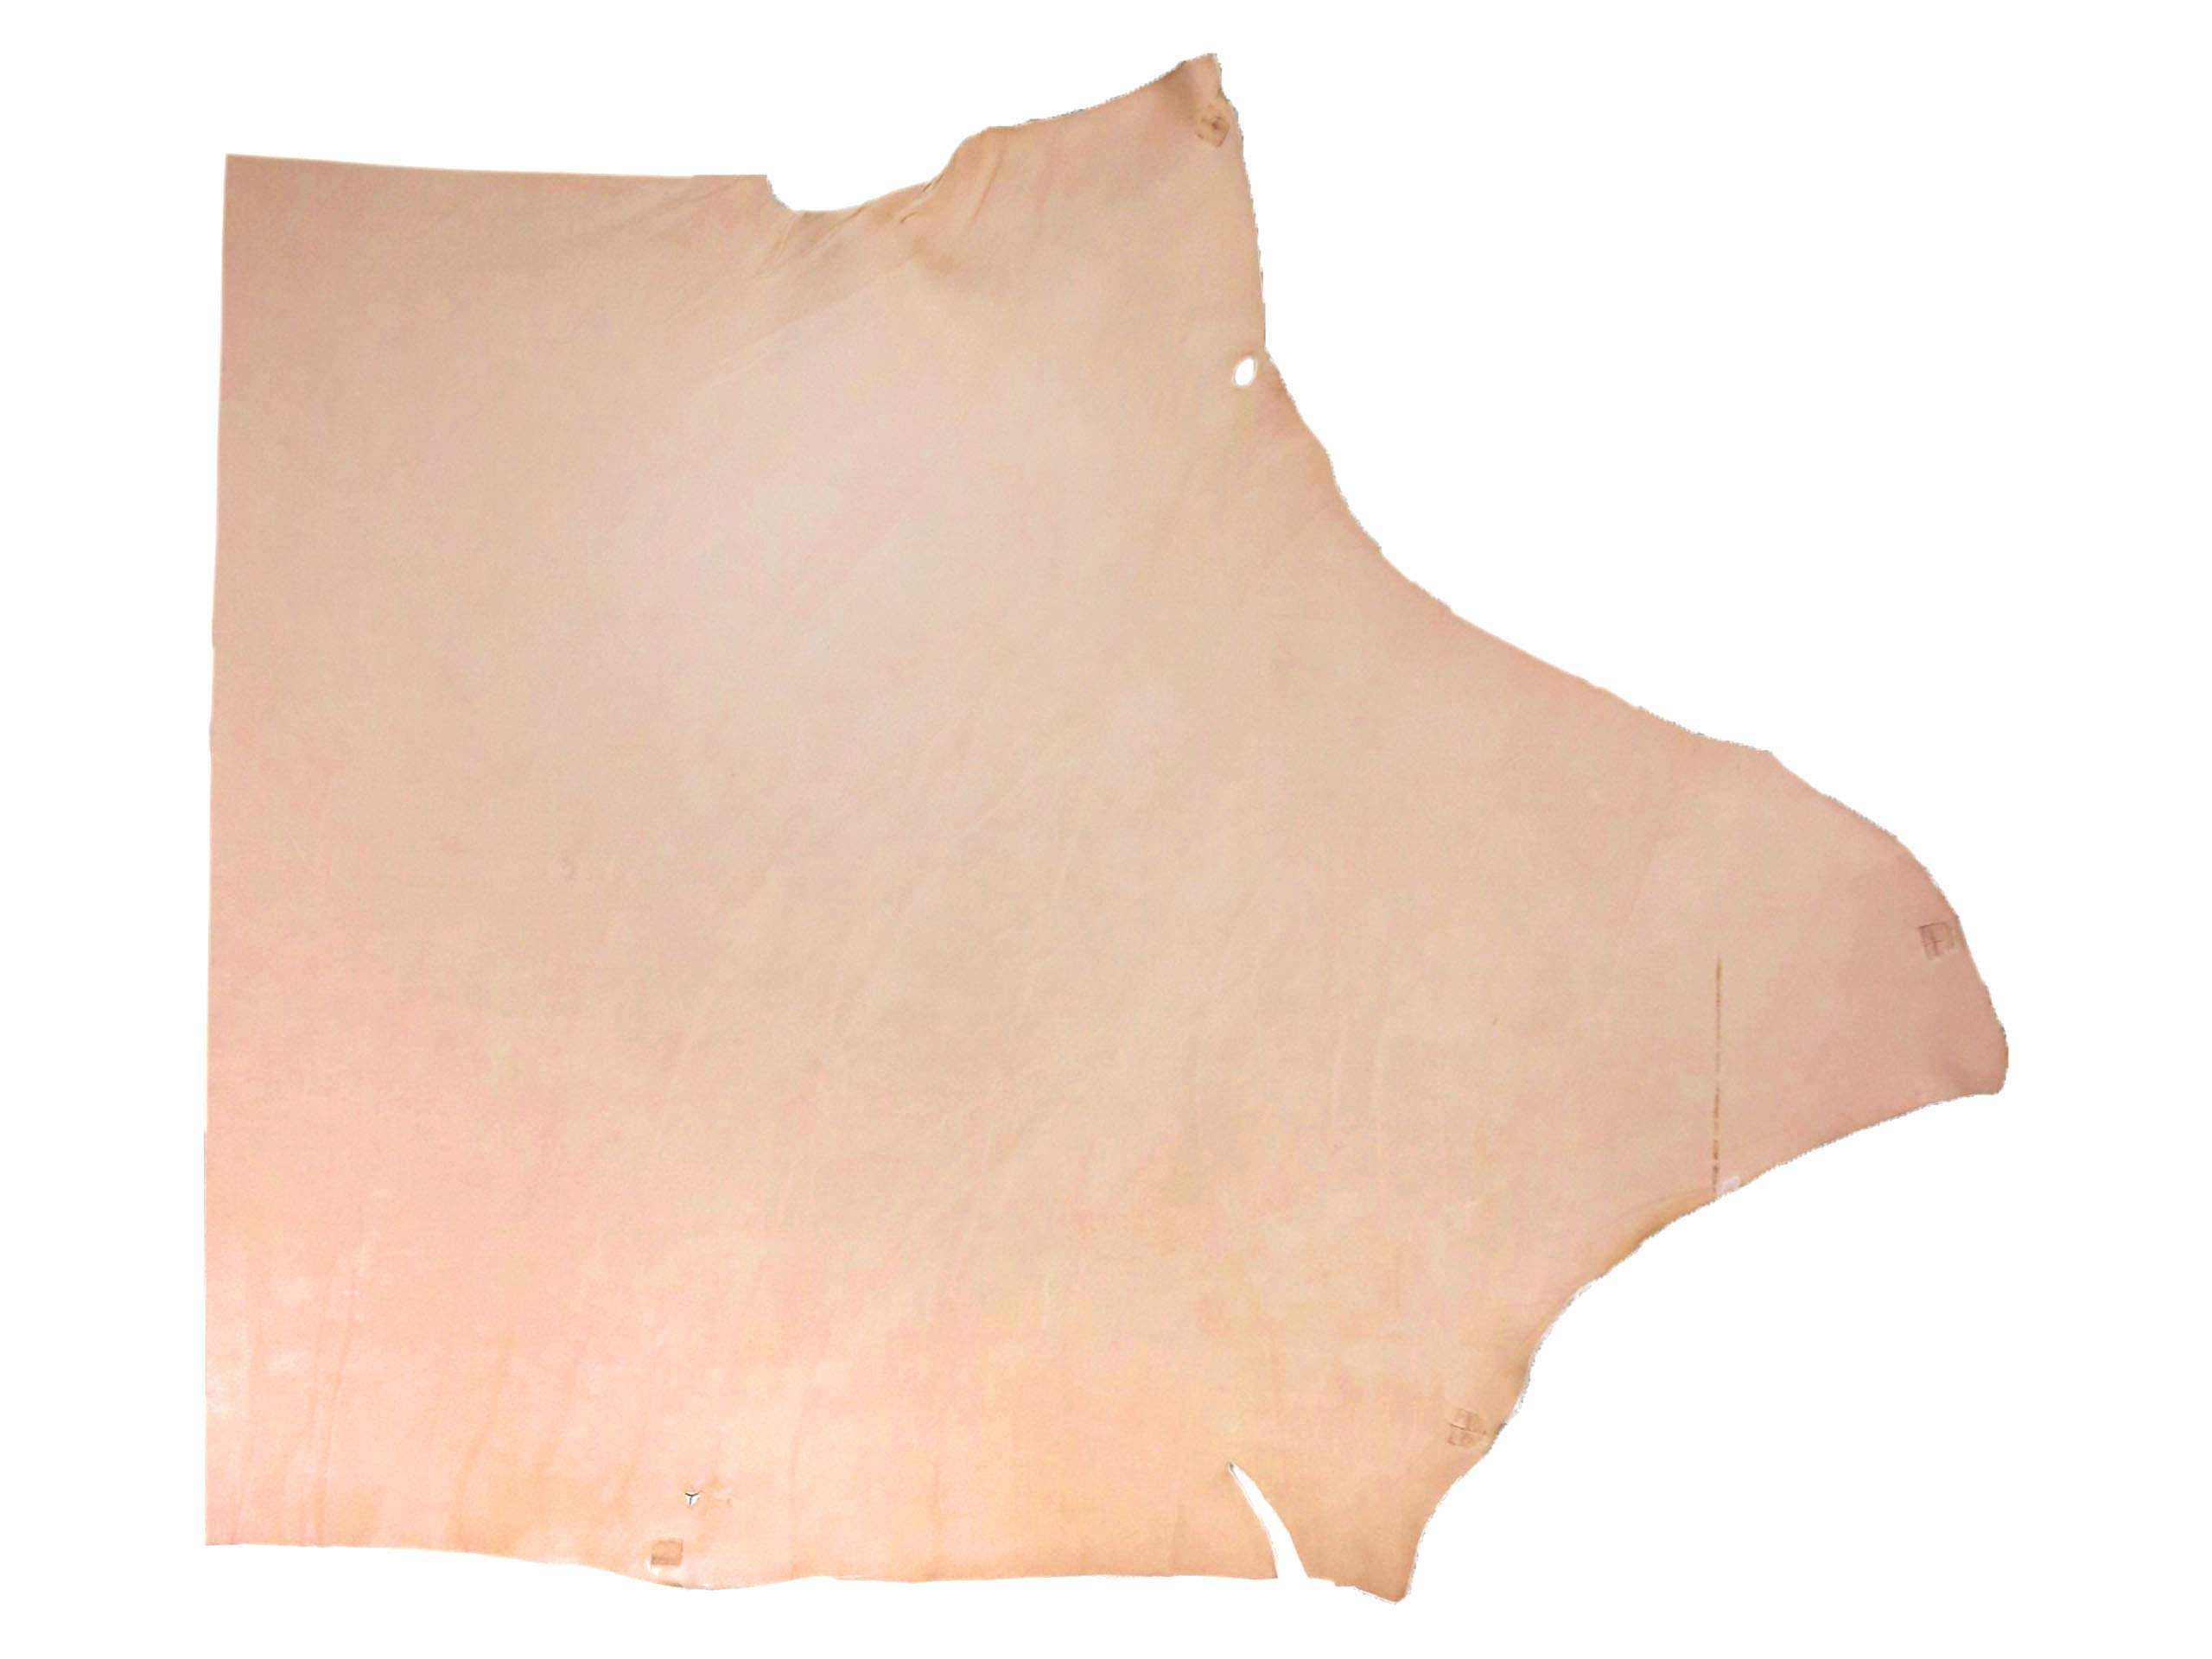 Hermann Oak Vegetable Veg Tan Tooling Cowhide Single Shoulder 8-9 oz 4-6 Sqft